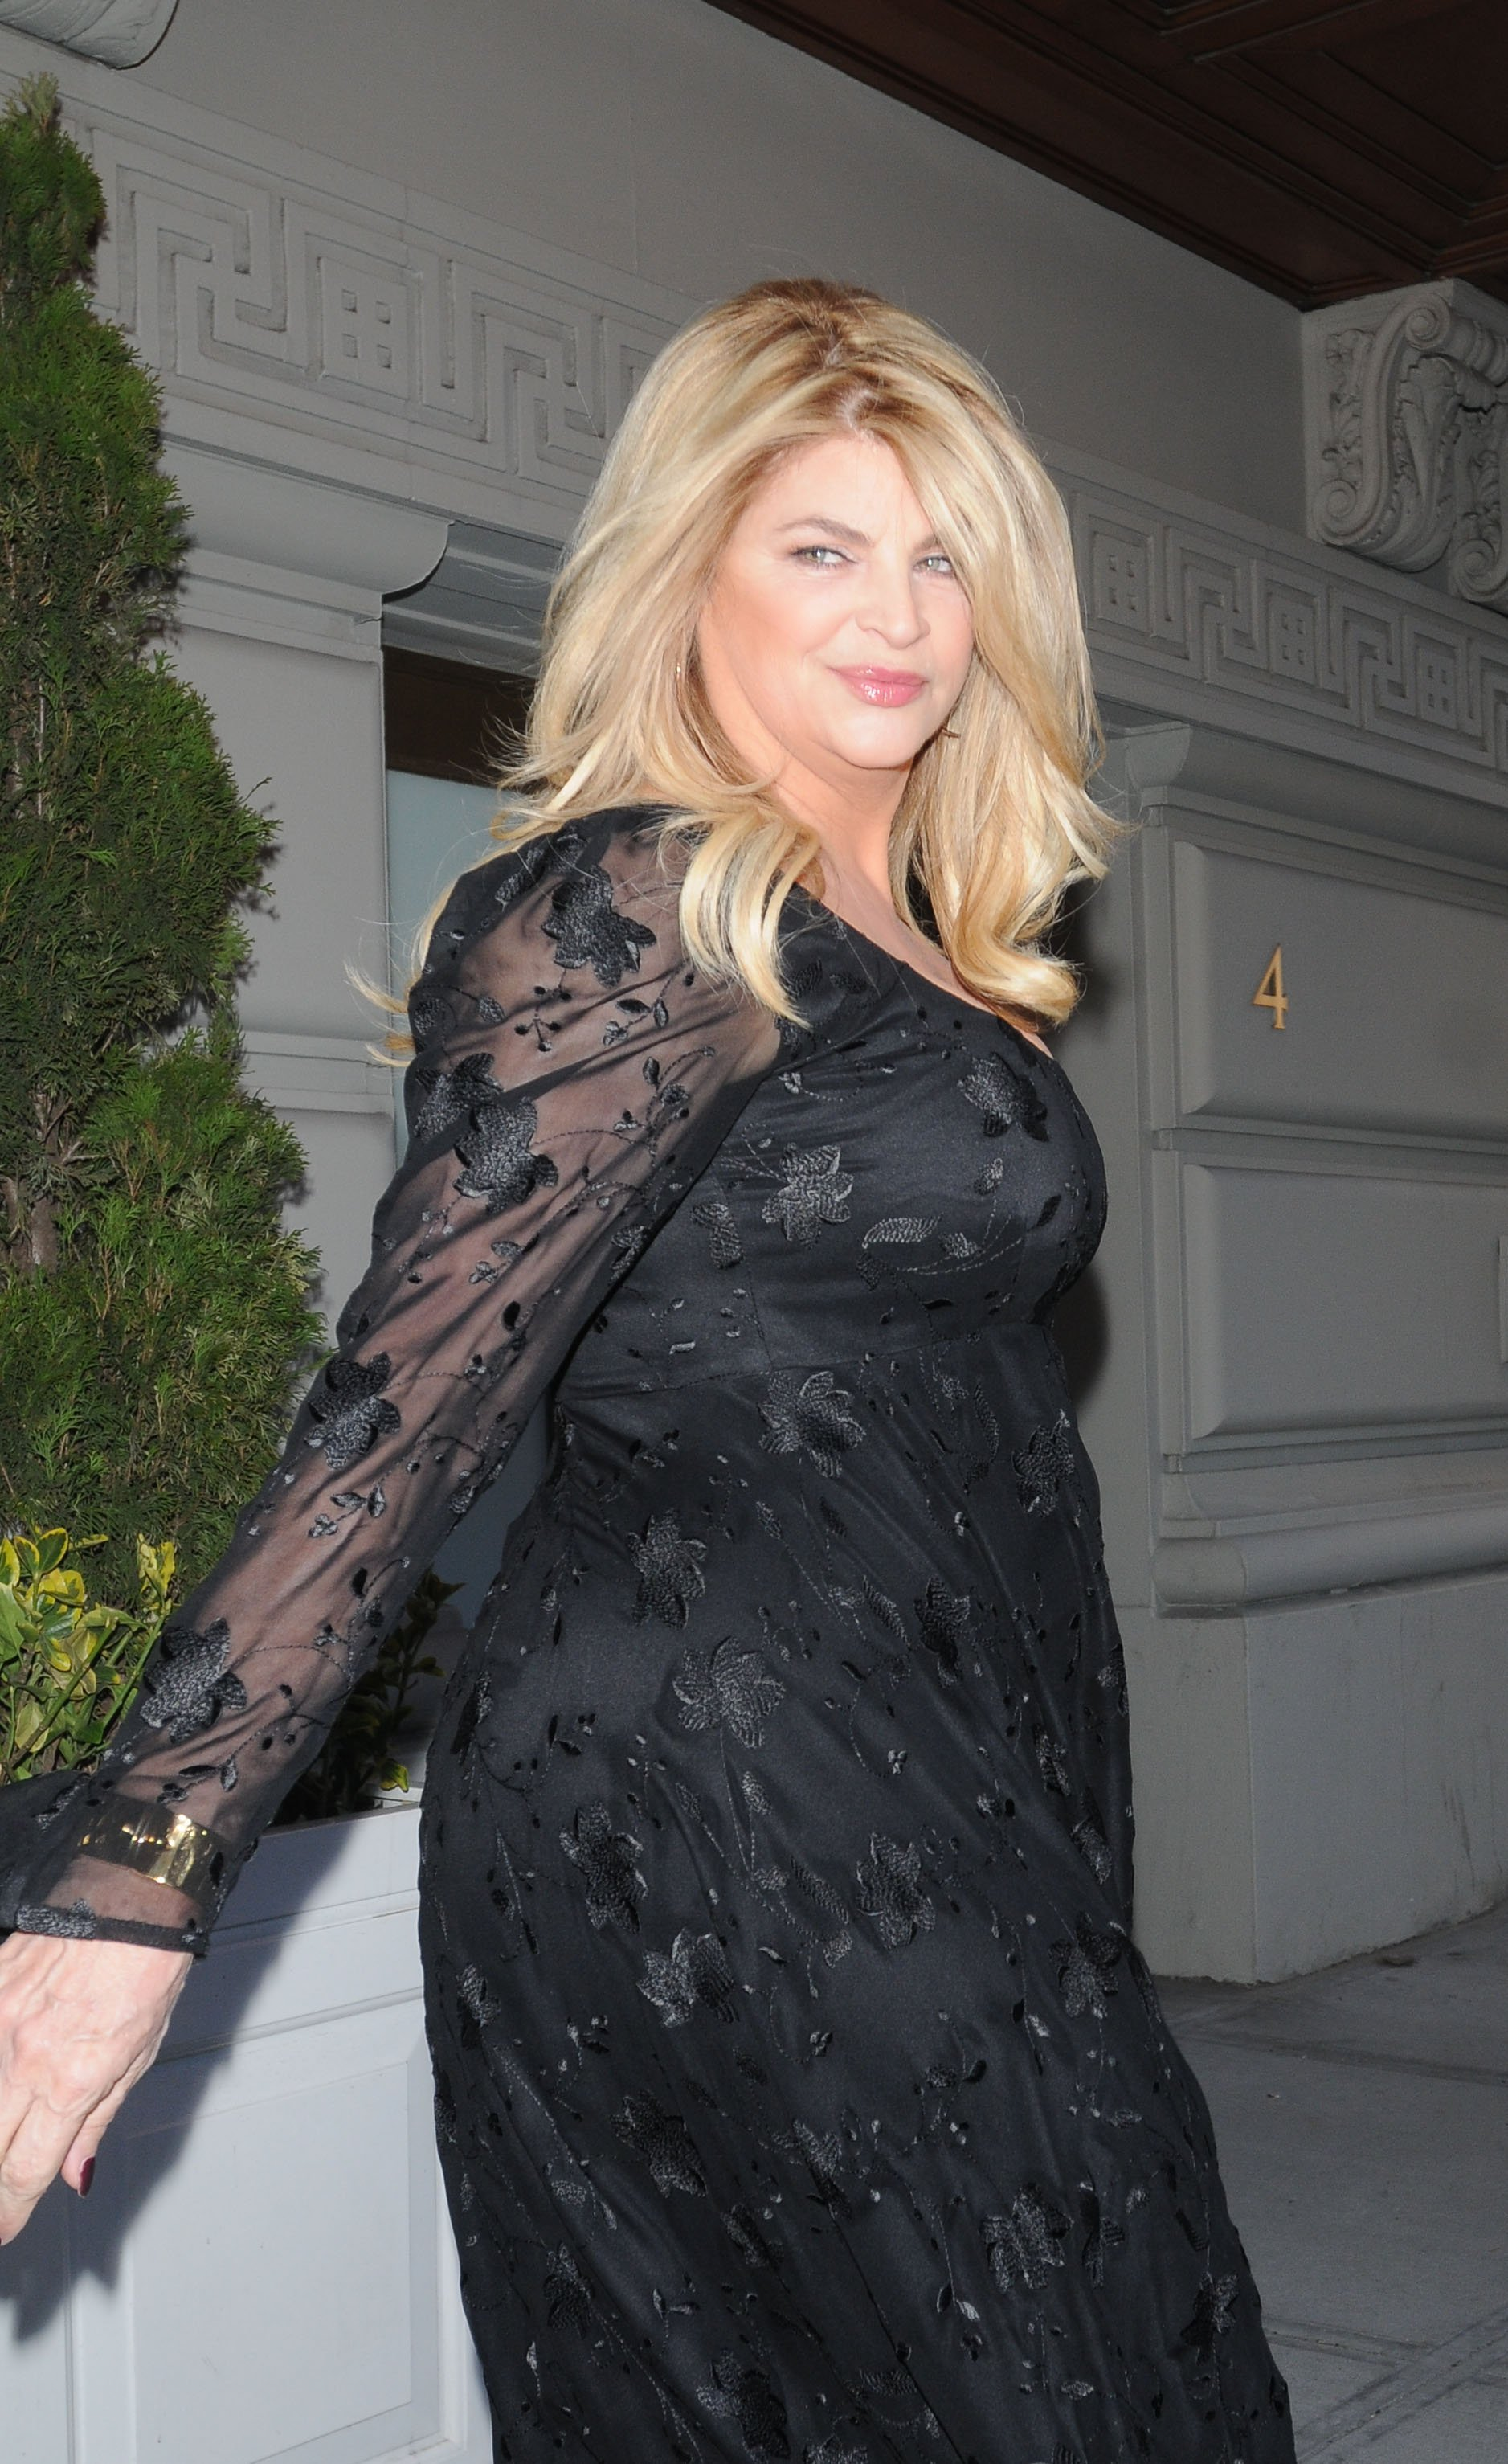 Kirstie Alley on March 16, 2010 in New York City | Photo: Getty Images/Global Images Ukraine